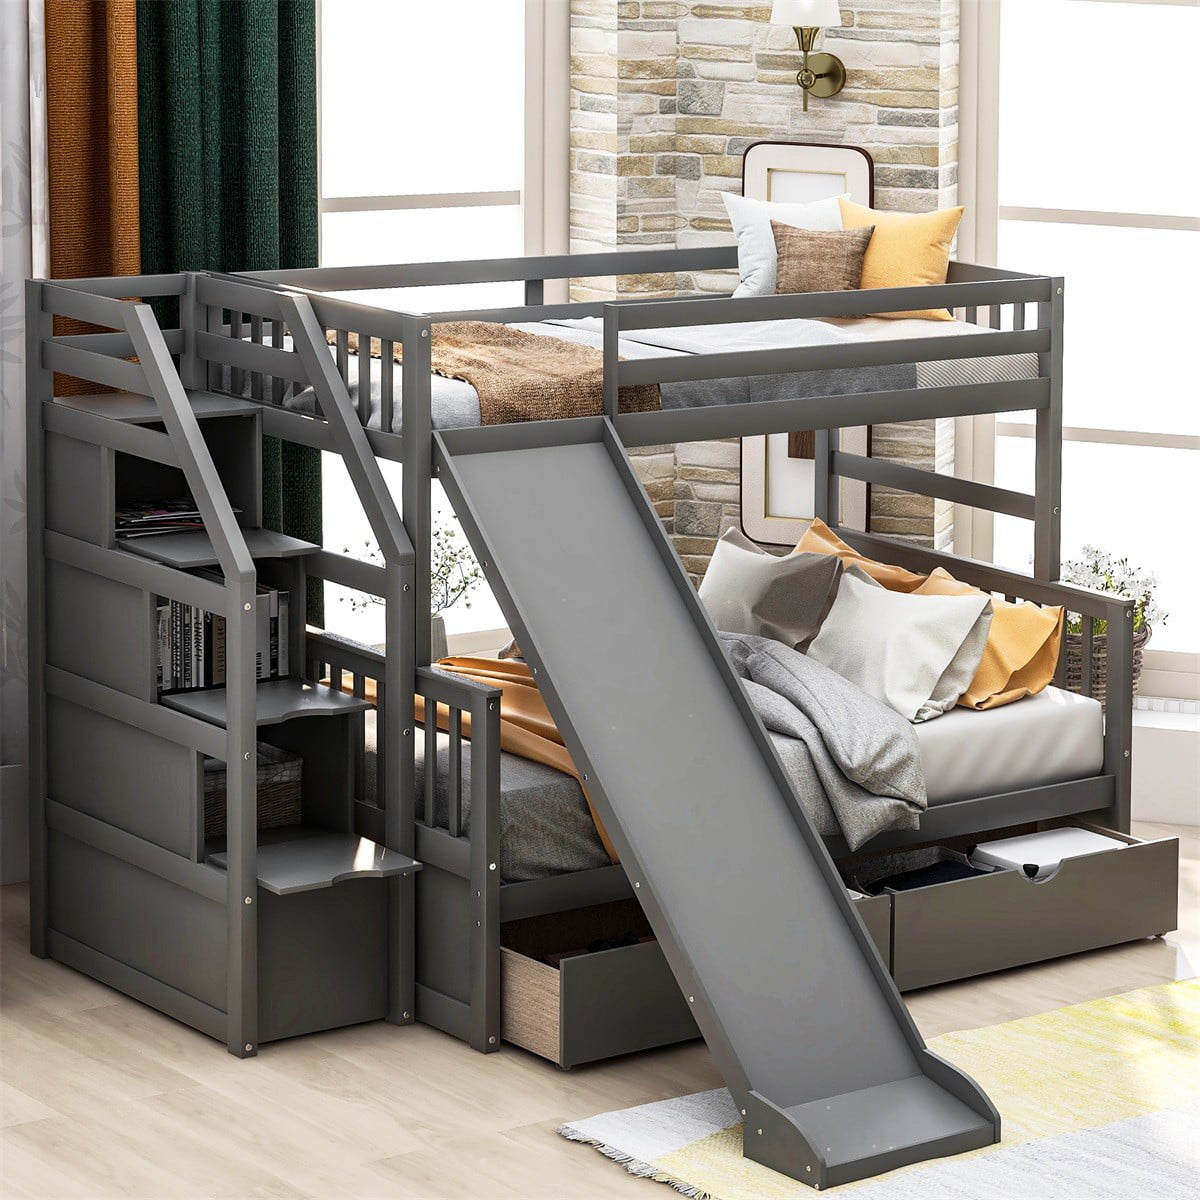 ModernLuxe Twin over Full Bunk Bed with Slide, Drawers ...